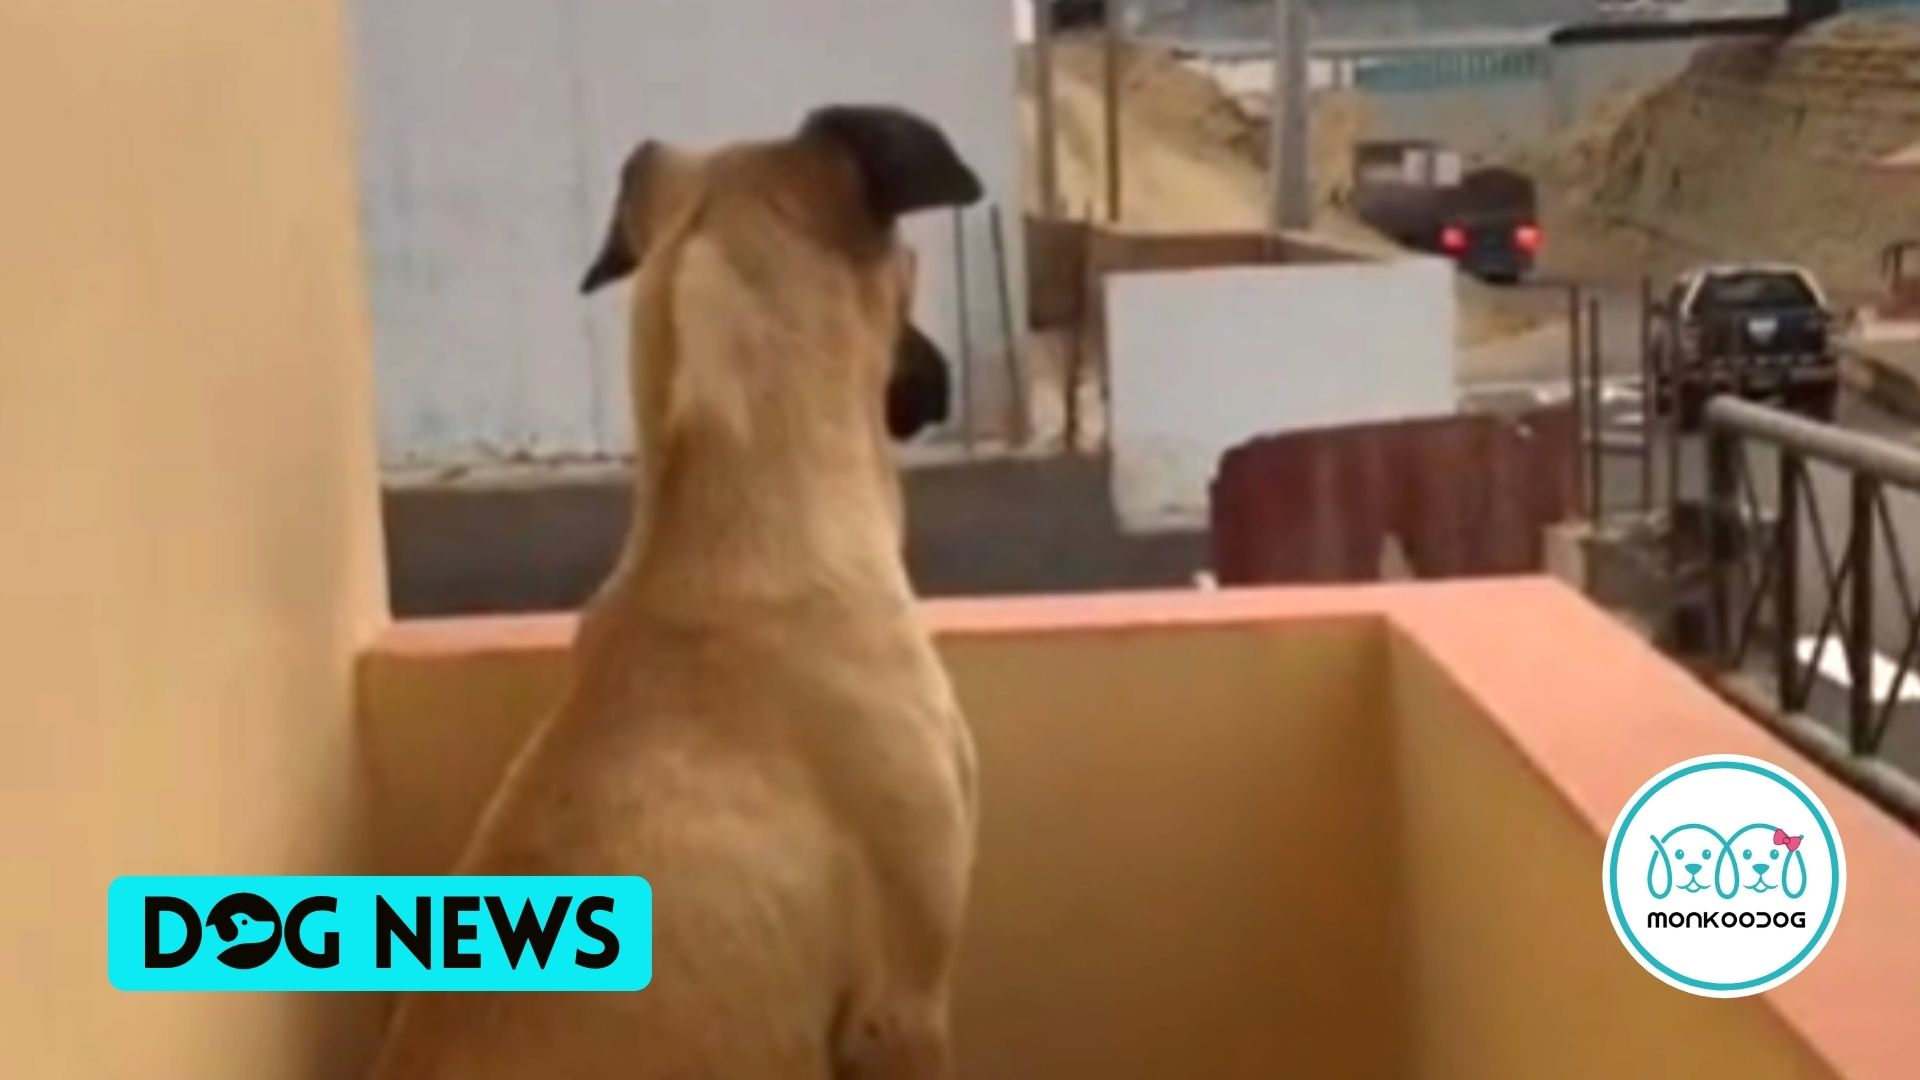 Dog portrays his unconditional devotion, awaiting his owner's return every day. Watch the viral video